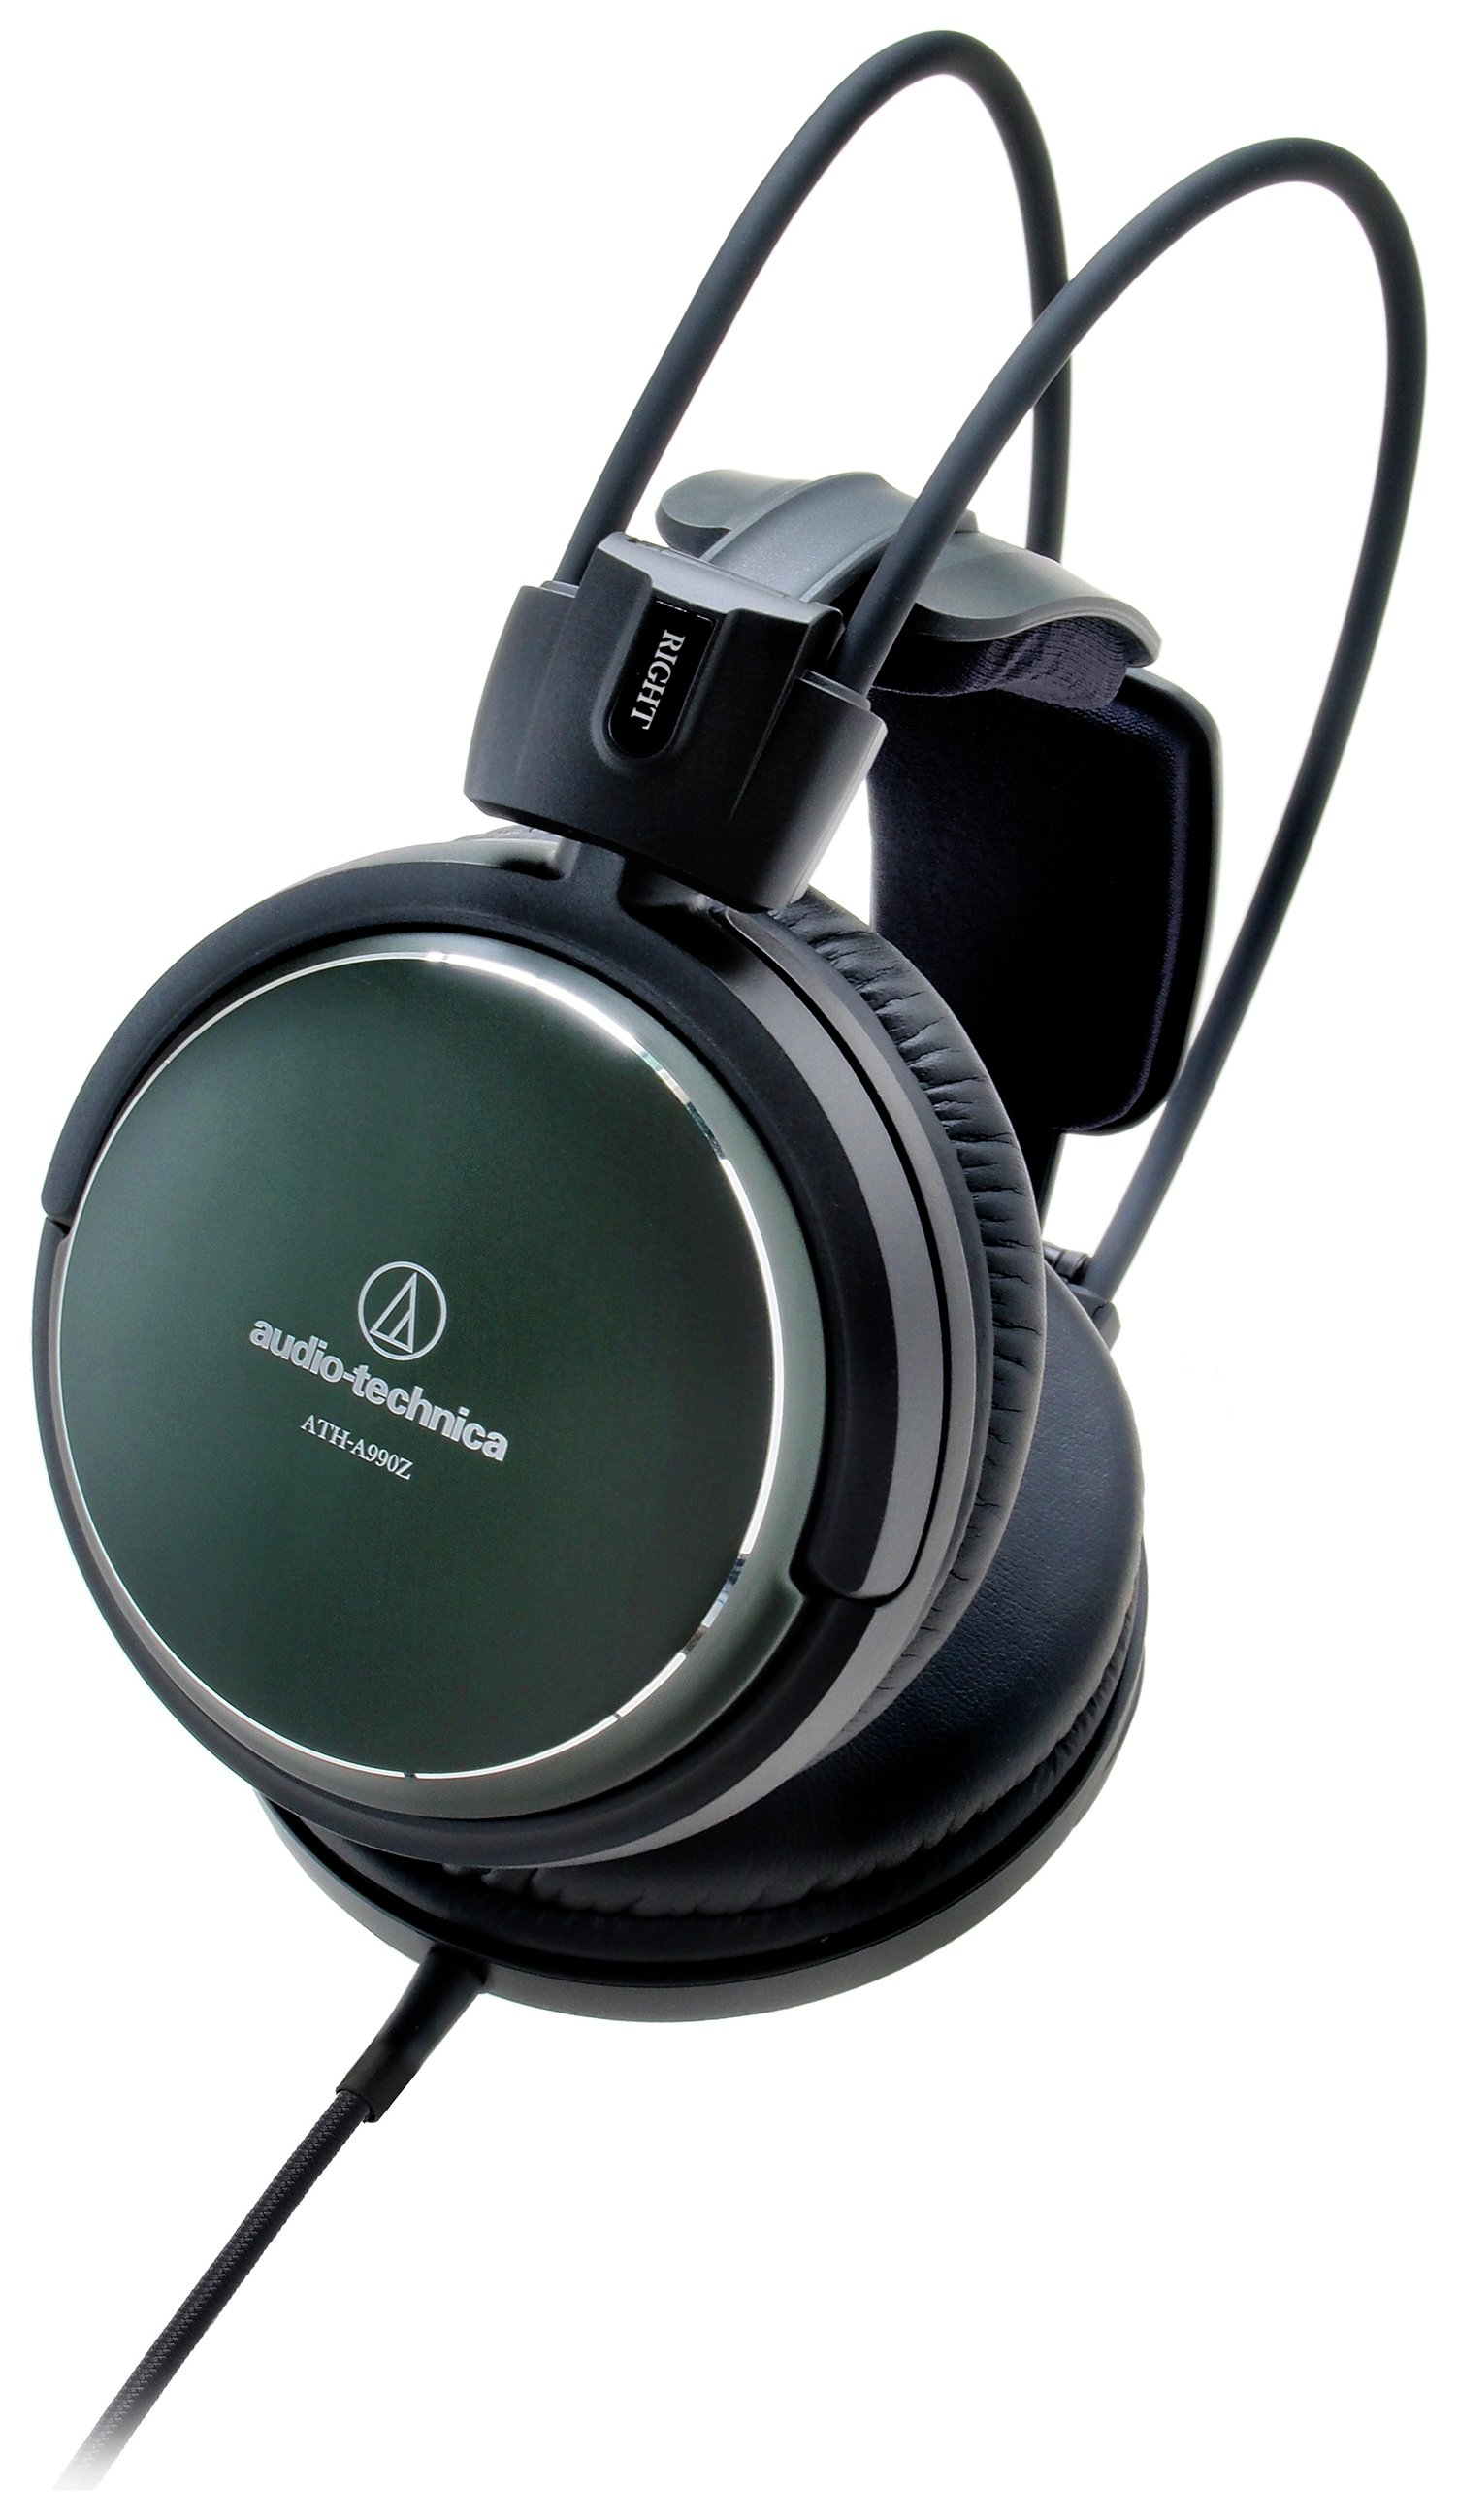 Image of Audio Technica ATH-A990Z On-Ear Headphones - Green.